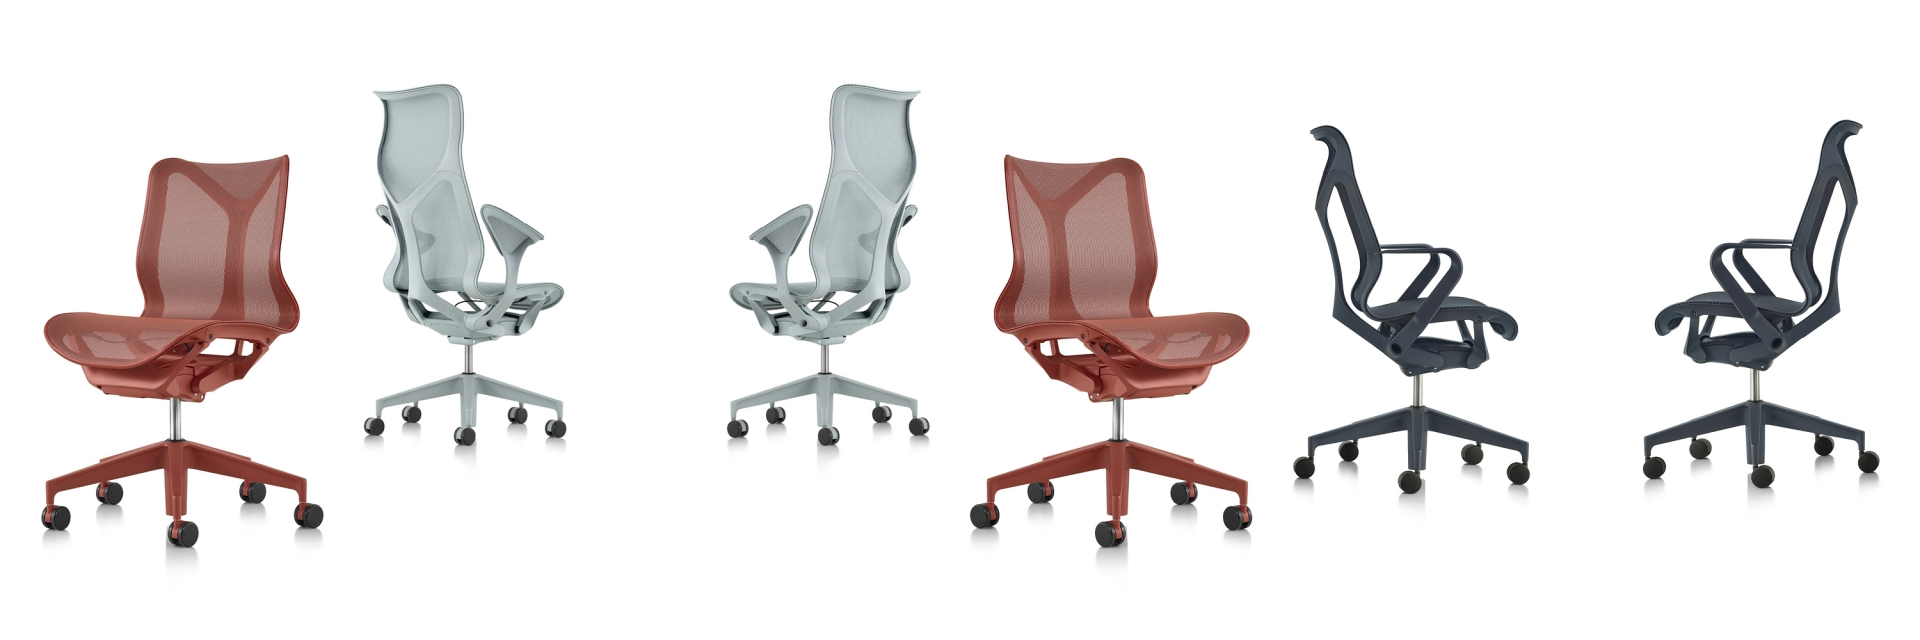 Cosm chair by Herman Miller, Cosm chair designed by Studio 7.5, Cosm available at designcraft